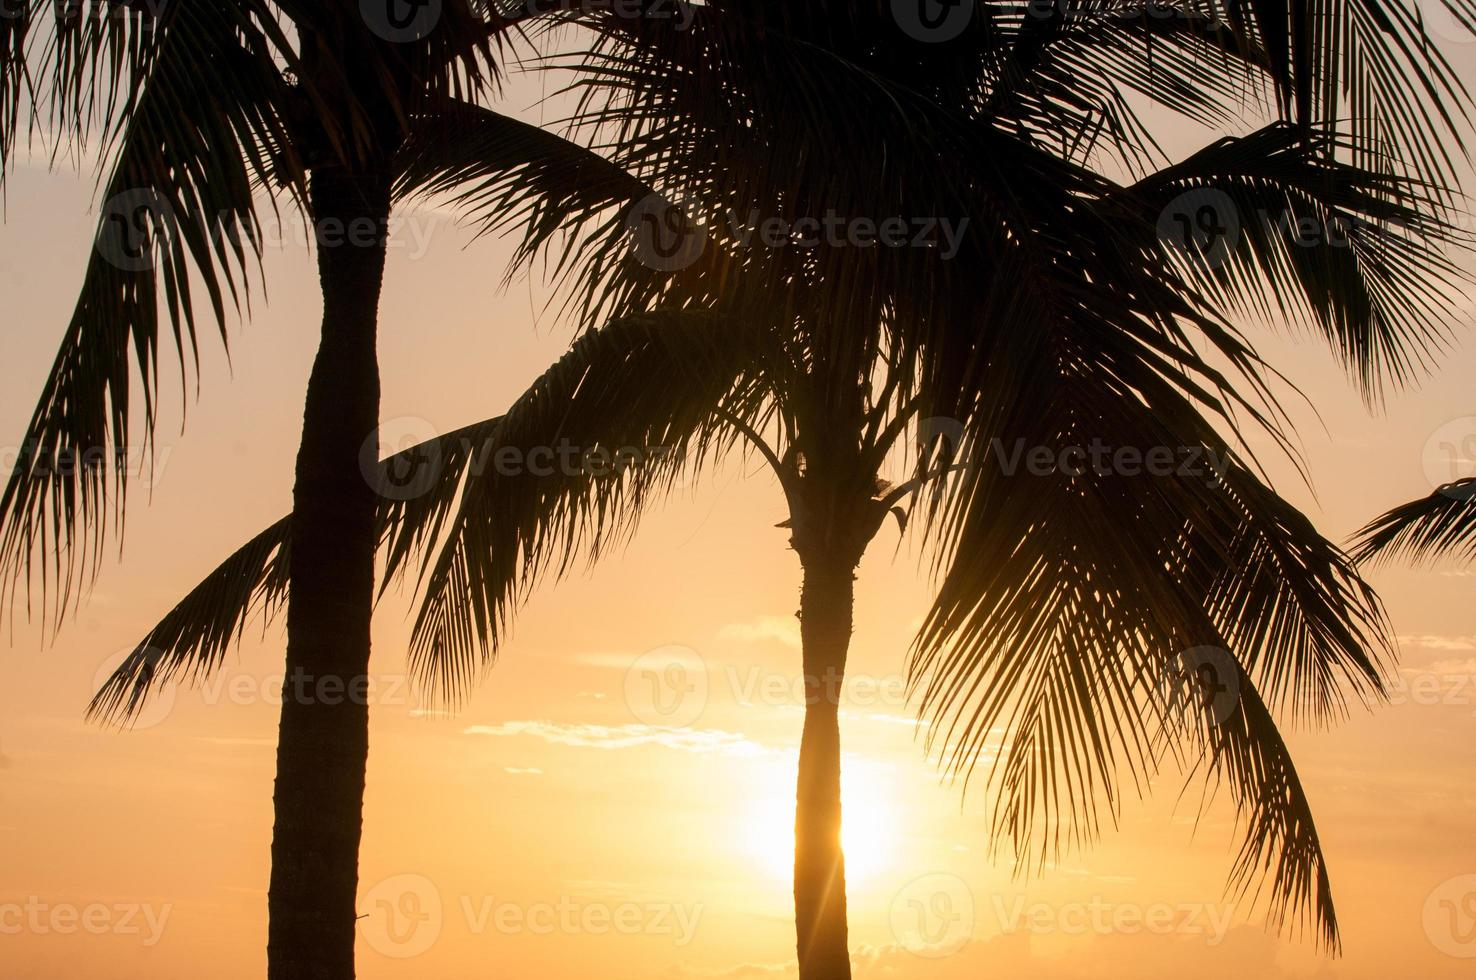 Palm trees in the morning photo